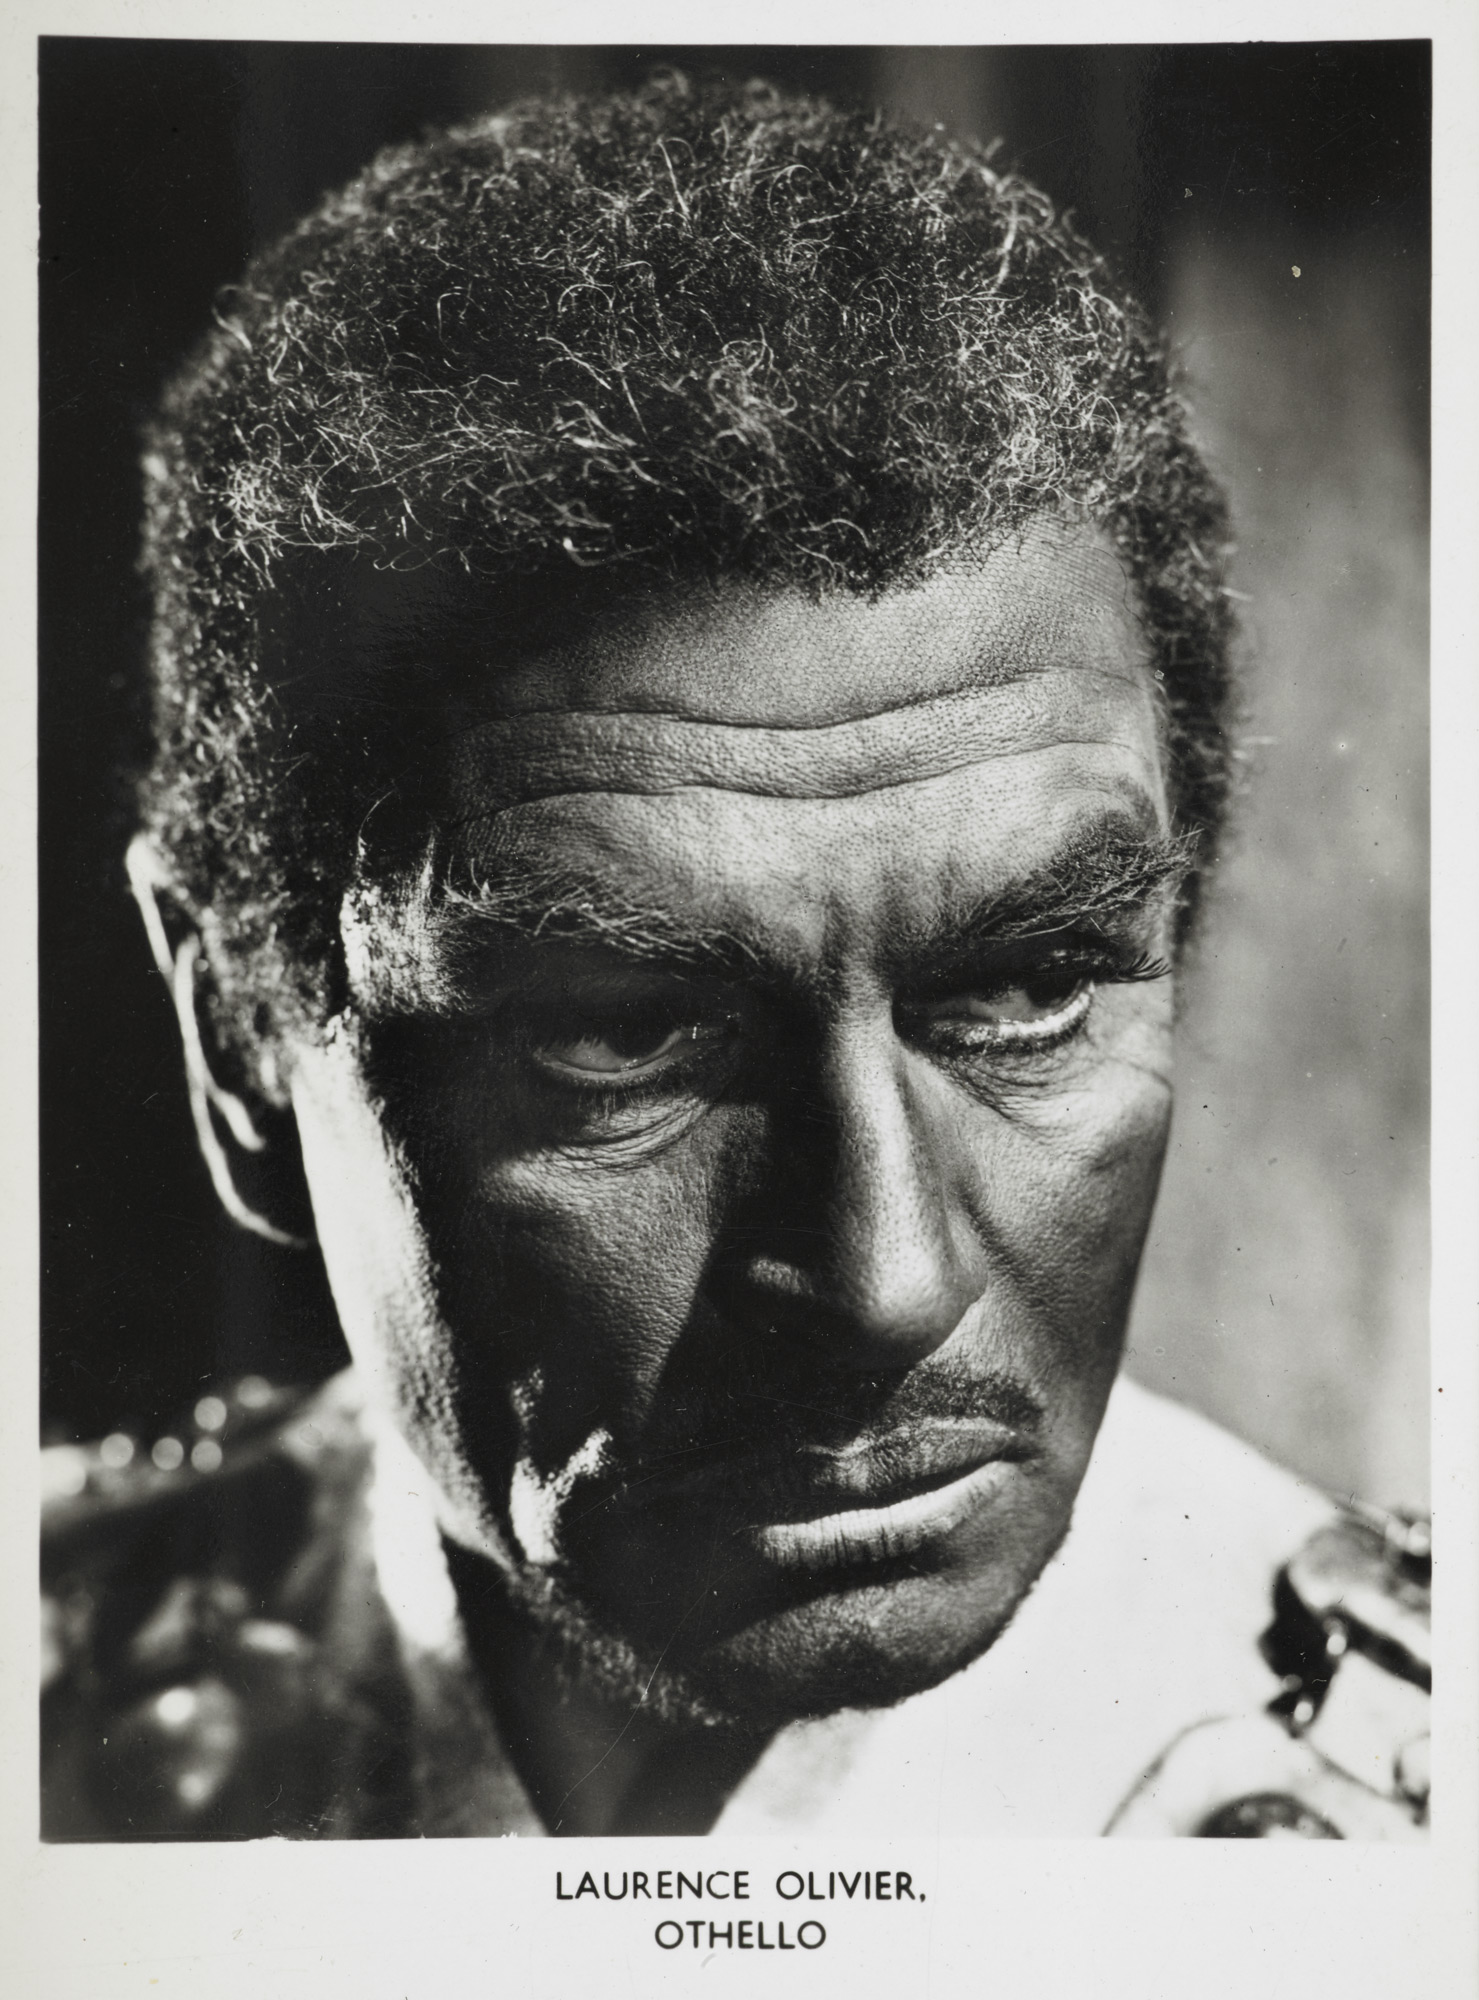 Postcard of Olivier as Othello, 1964